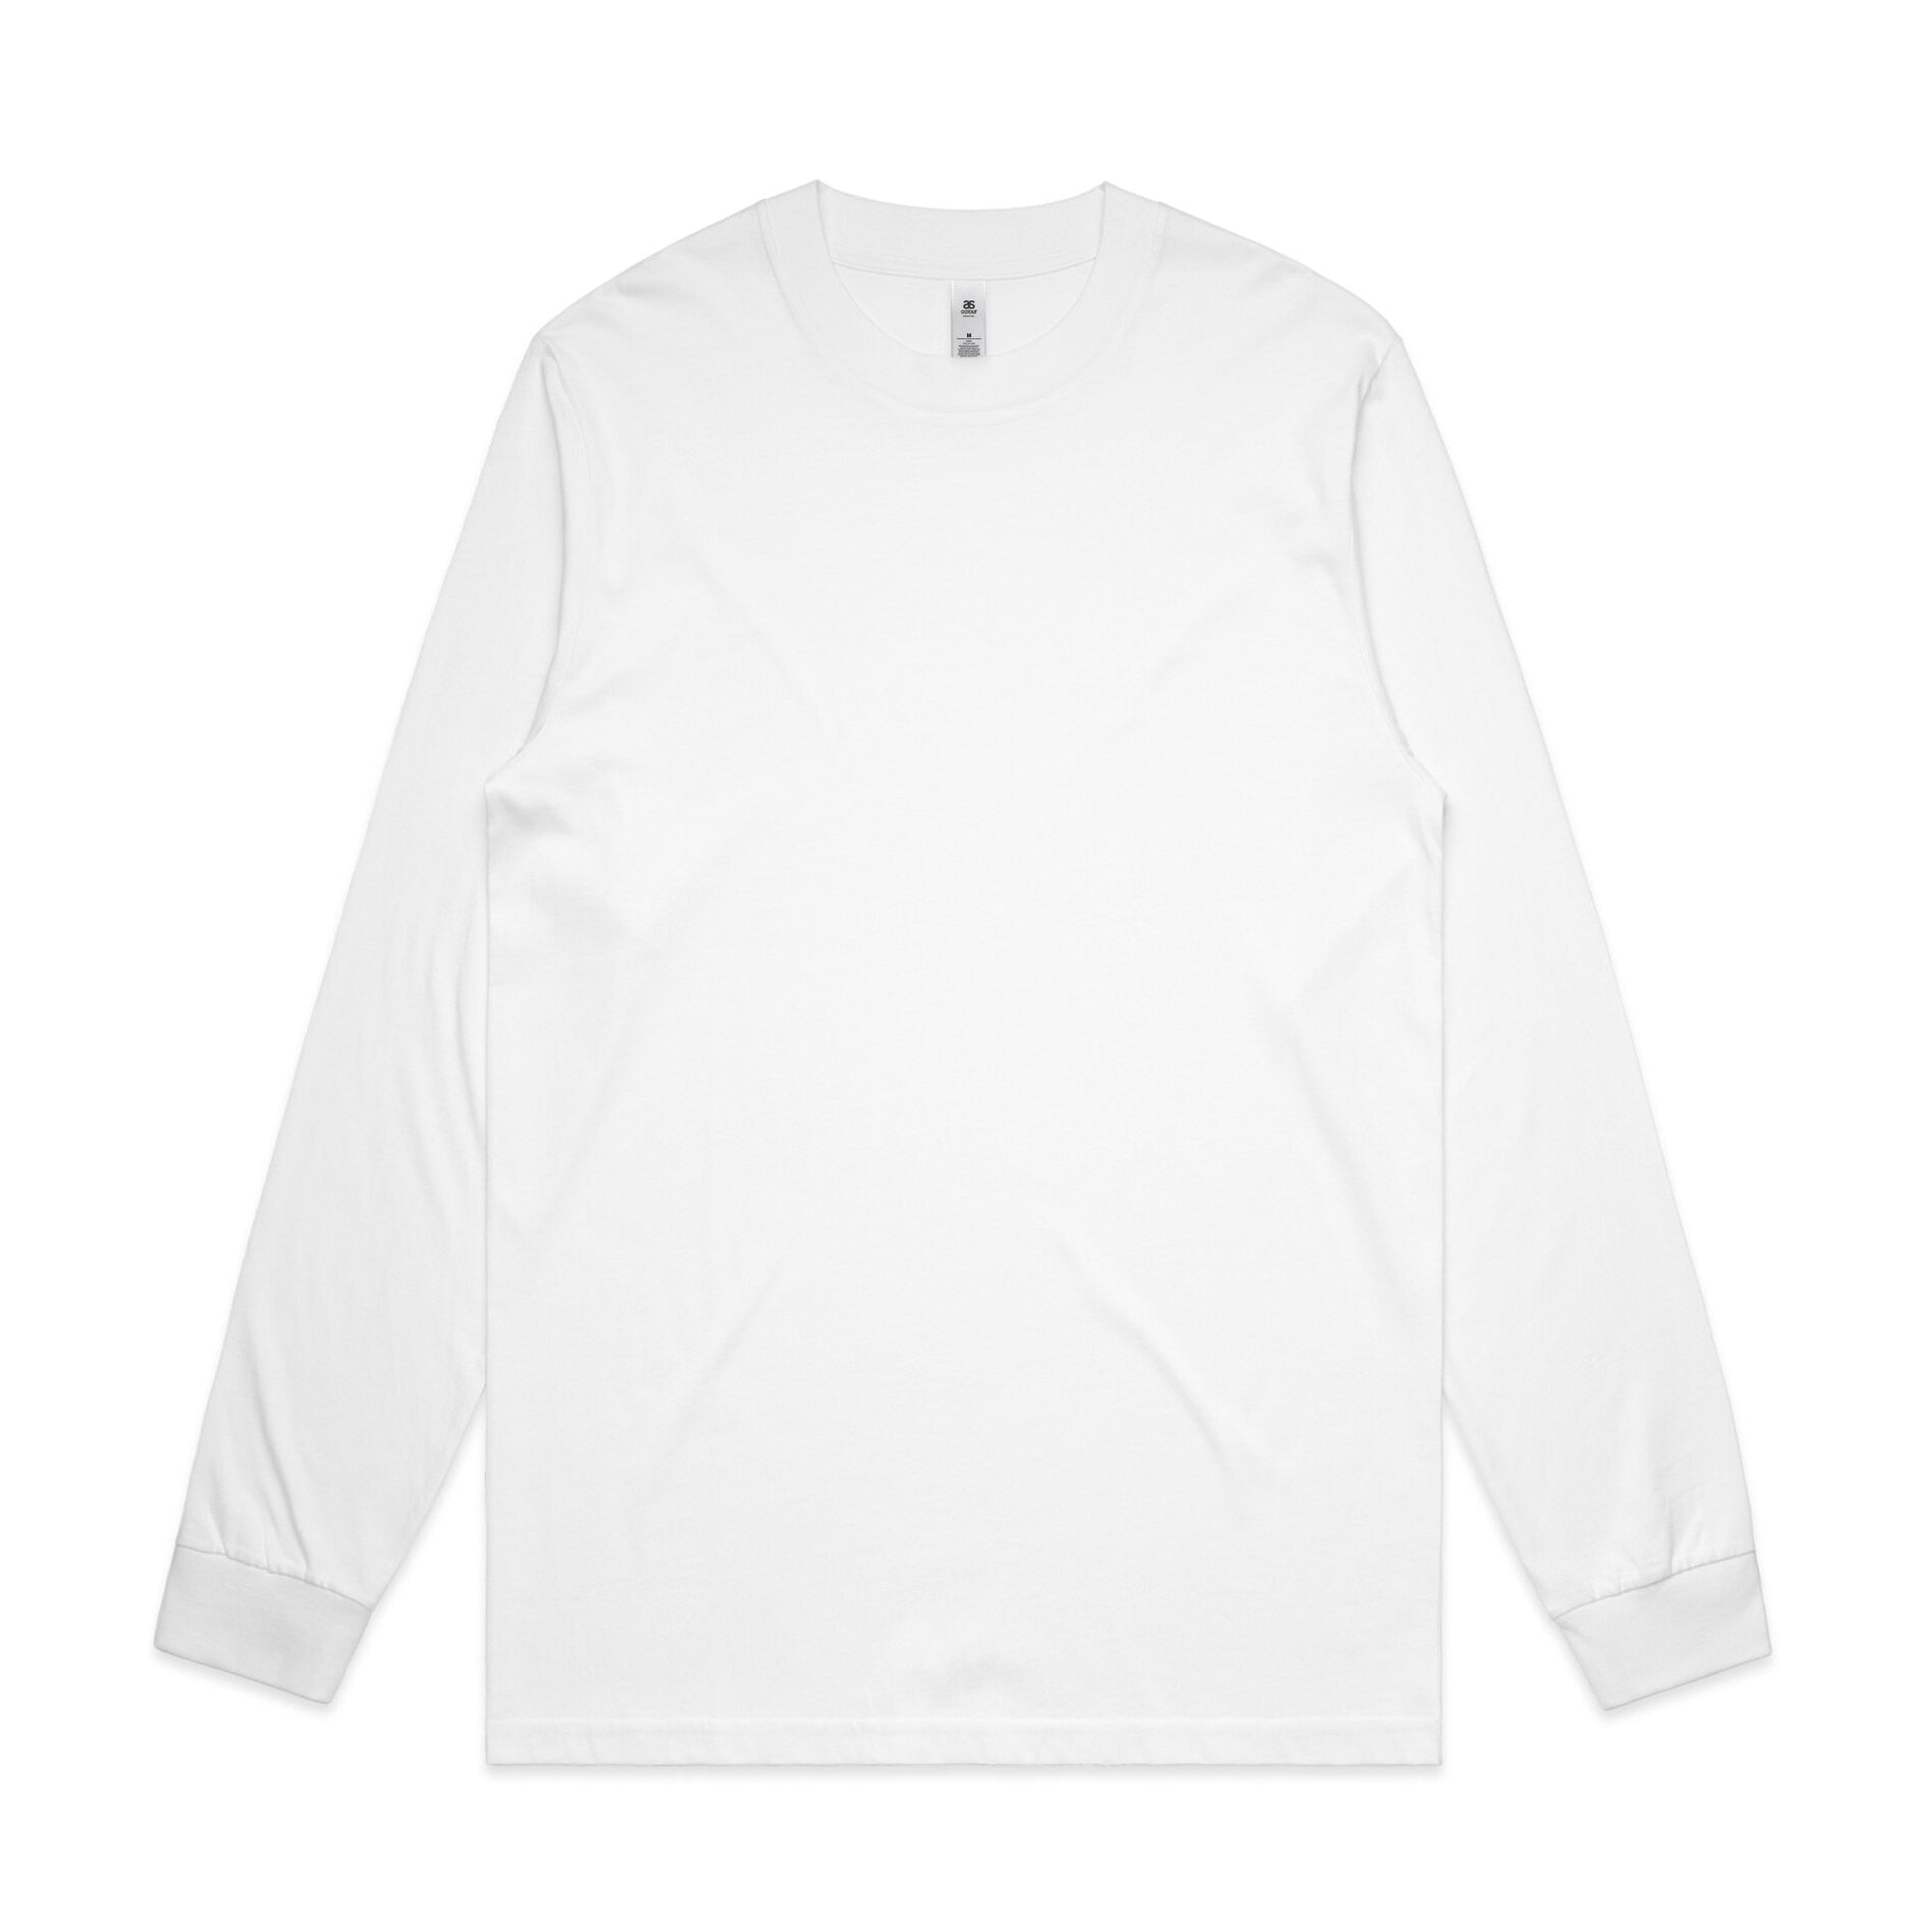 AS Colour General L/S Tee